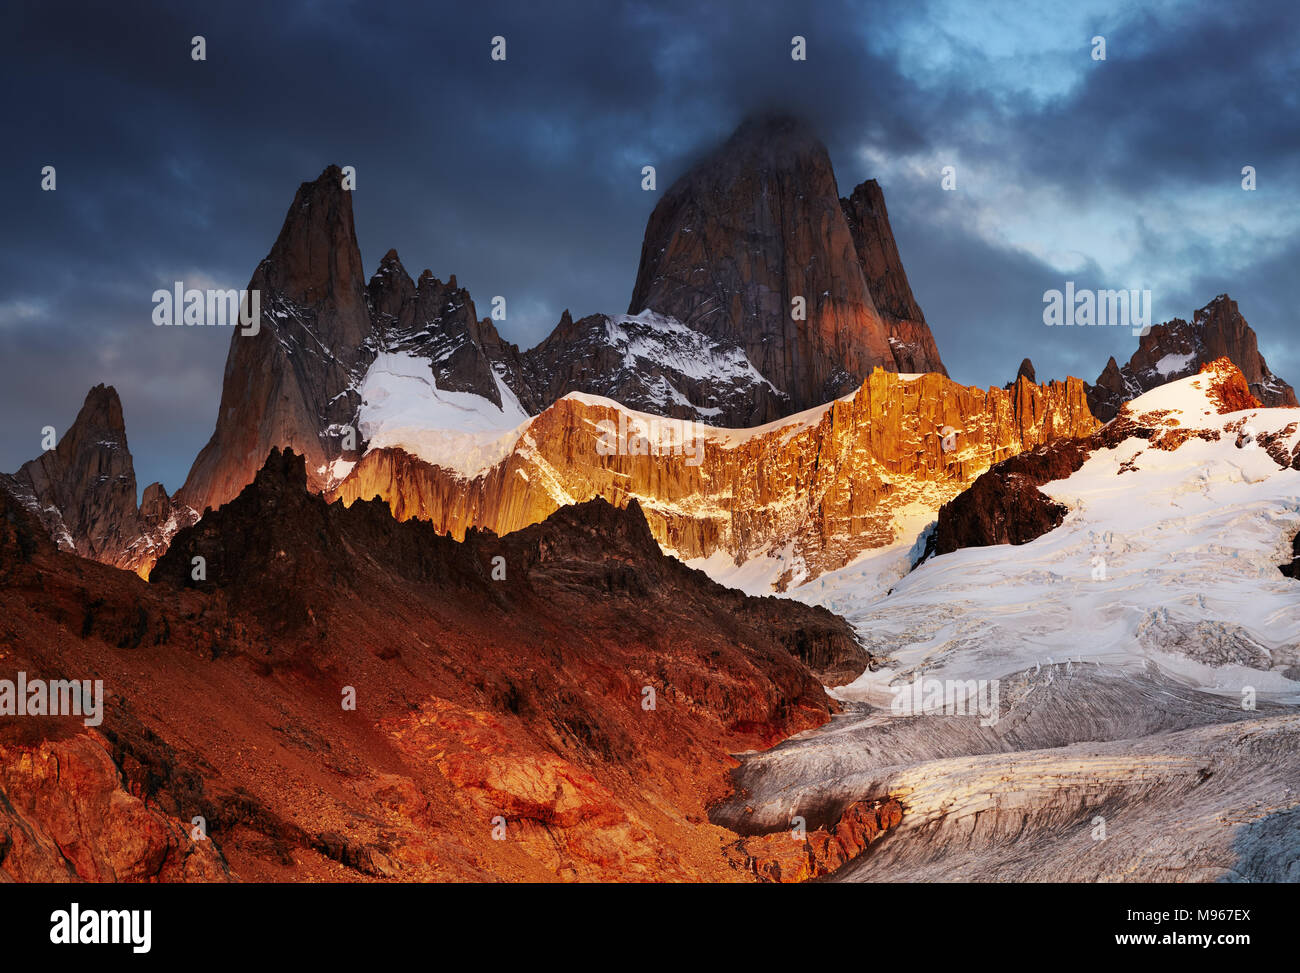 Mount Fitz Roy at sunrise, Patagonia, Argentina - Stock Image